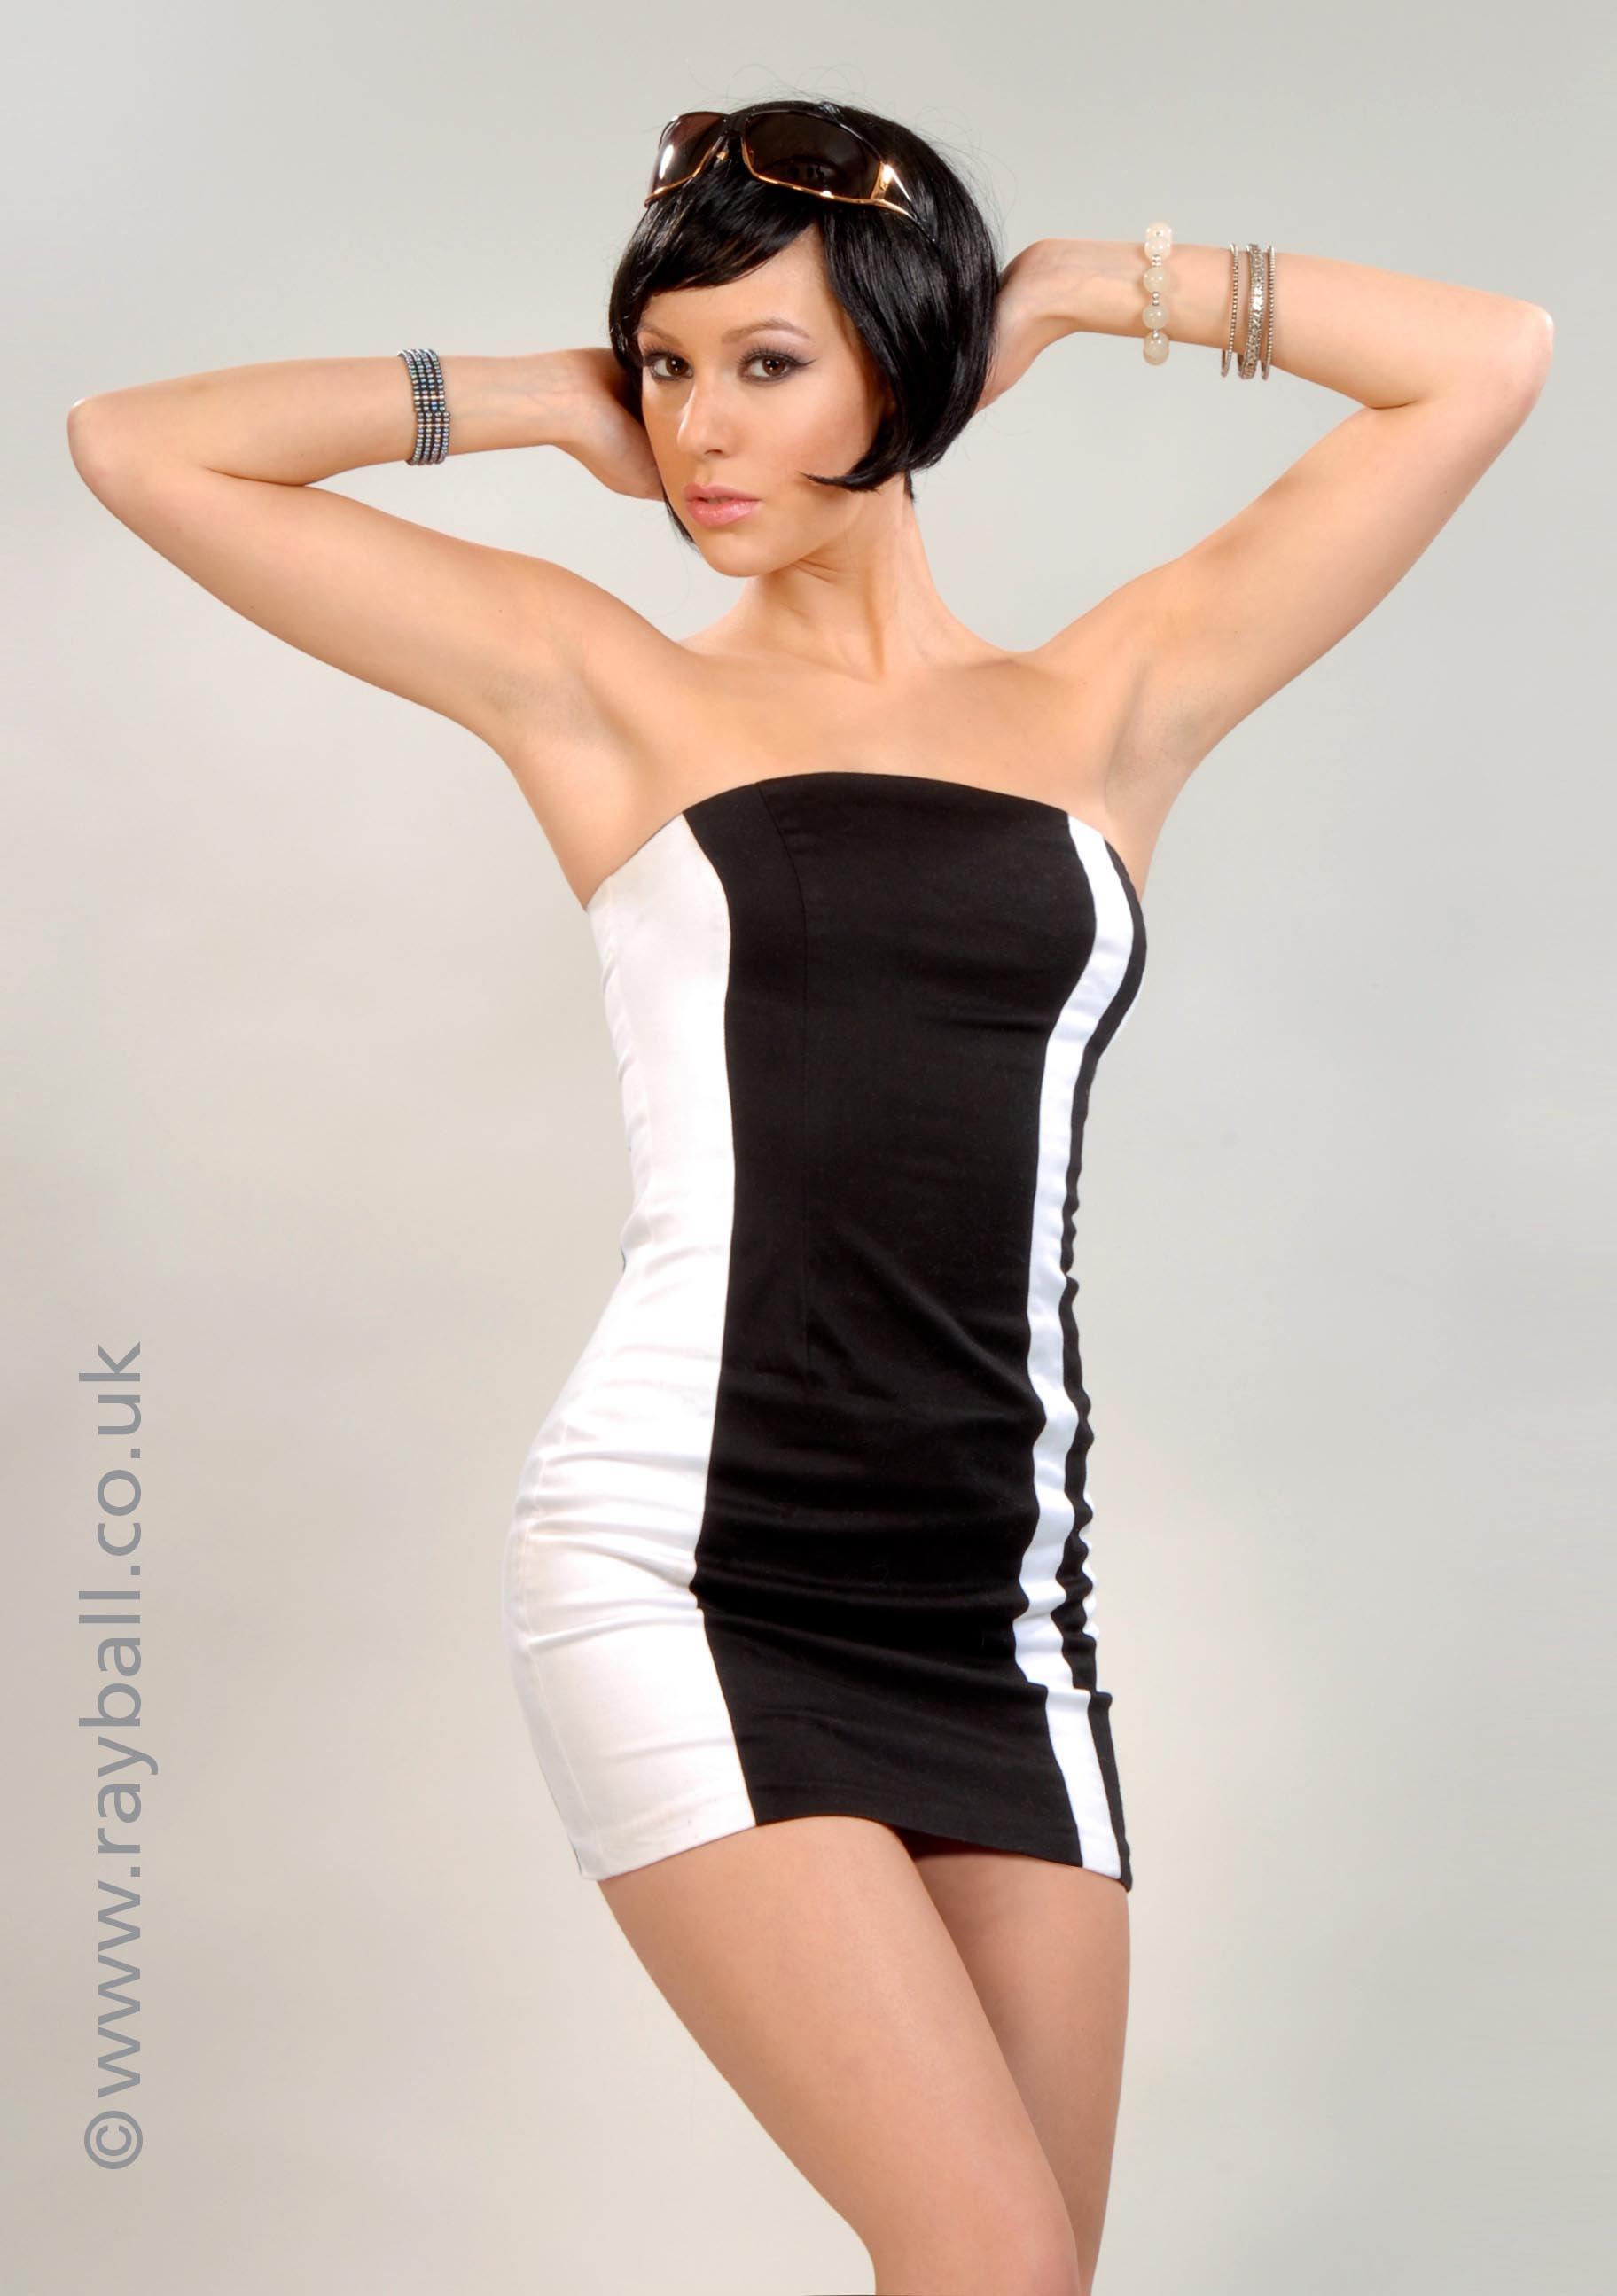 Worcester Park model in Courreges dress from Tolworth at Epsom Photography Studio Surrey.